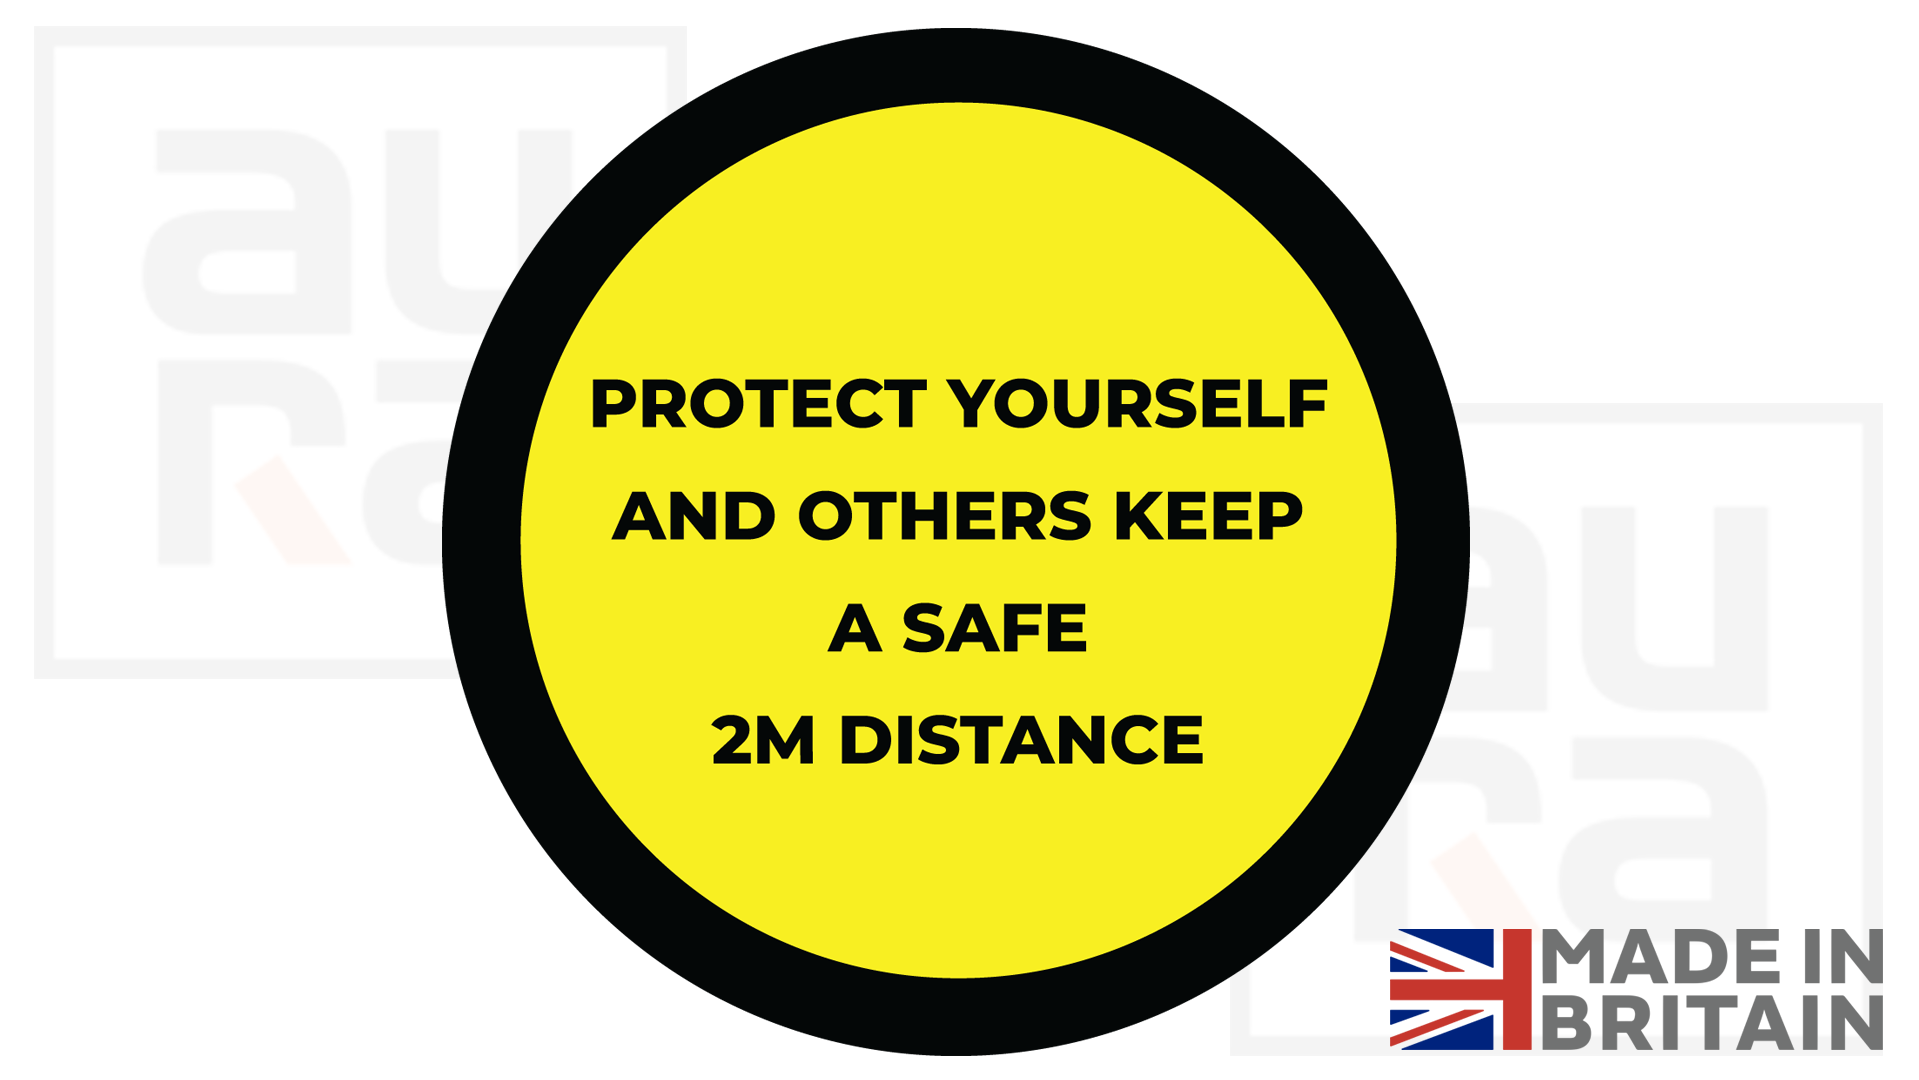 Protect yourself and others covid19 social distance shop floor sticker for business